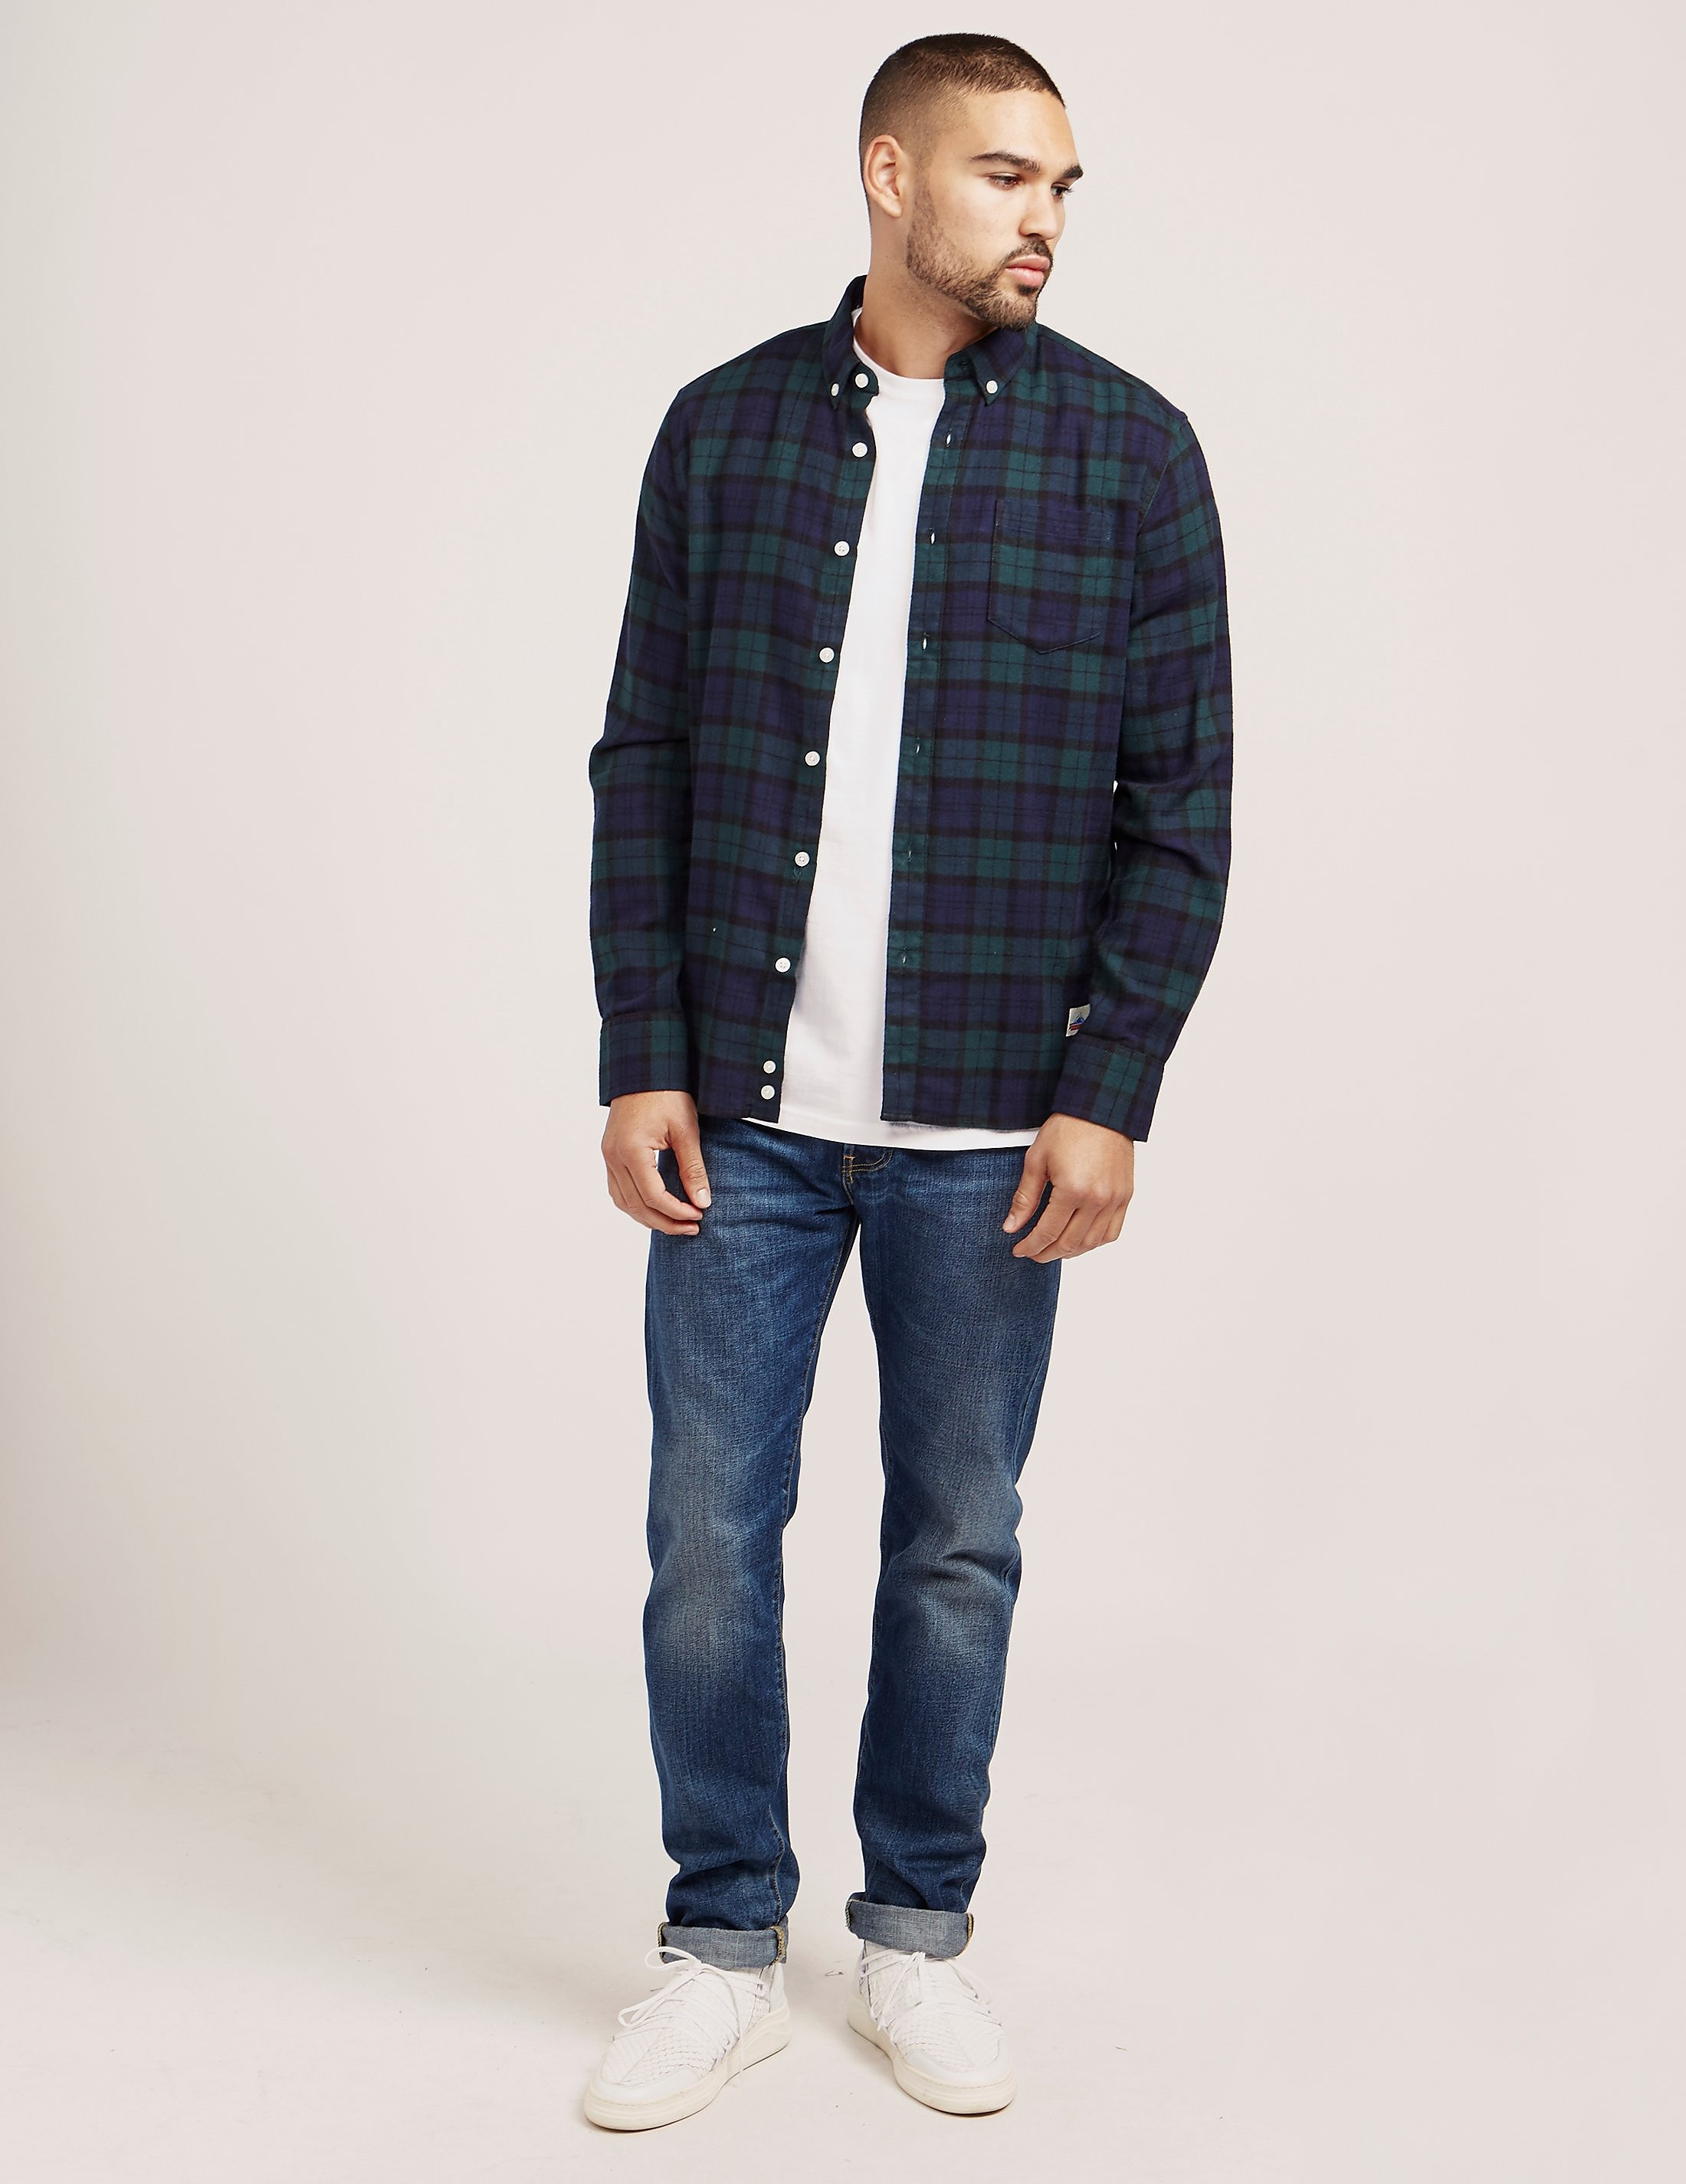 Penfield Young Blackwatch Long Sleeve Shirt